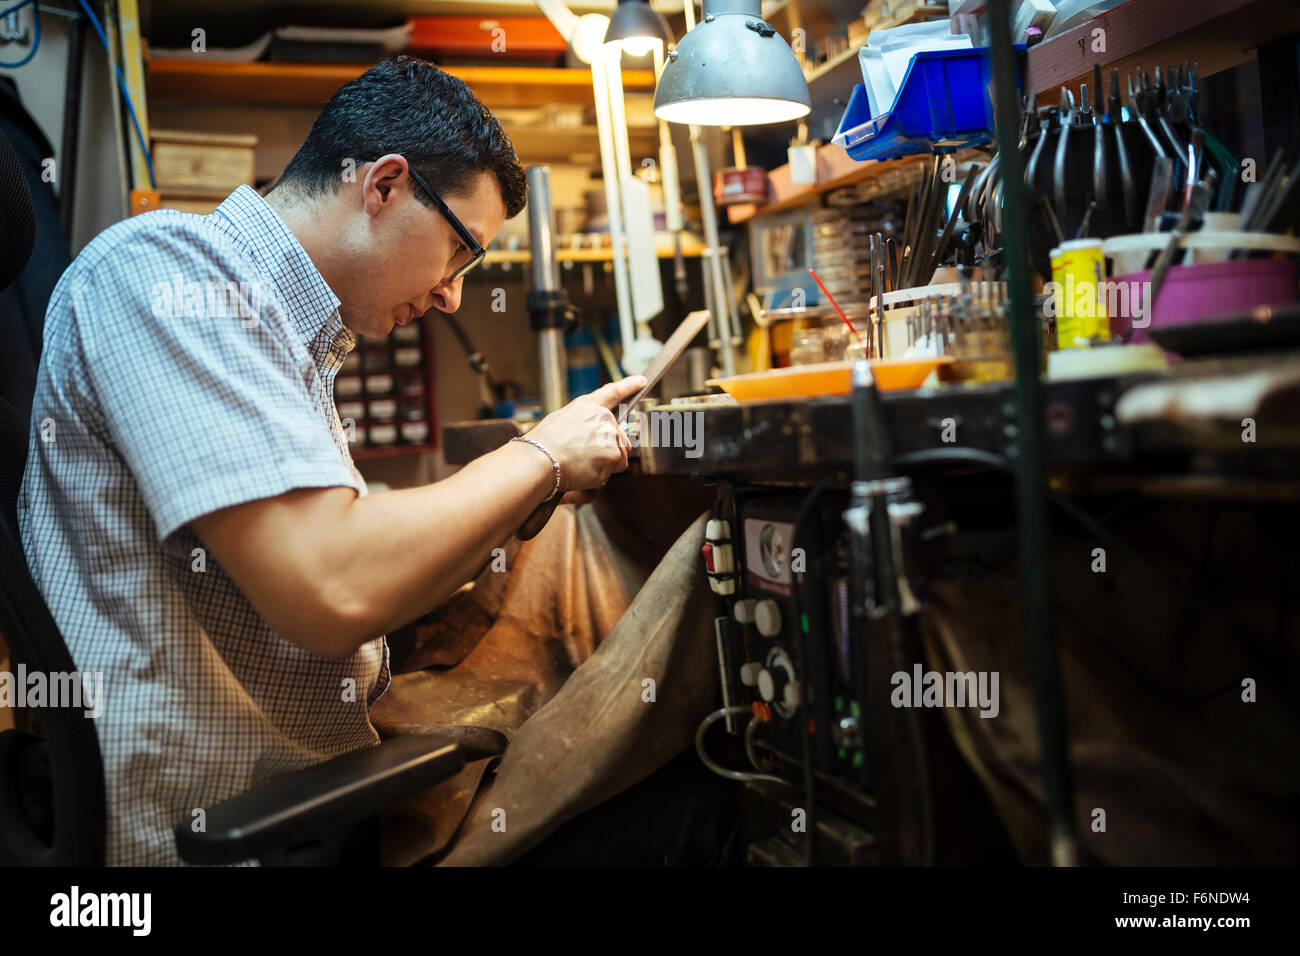 Goldsmith working on his workbench - Stock Image